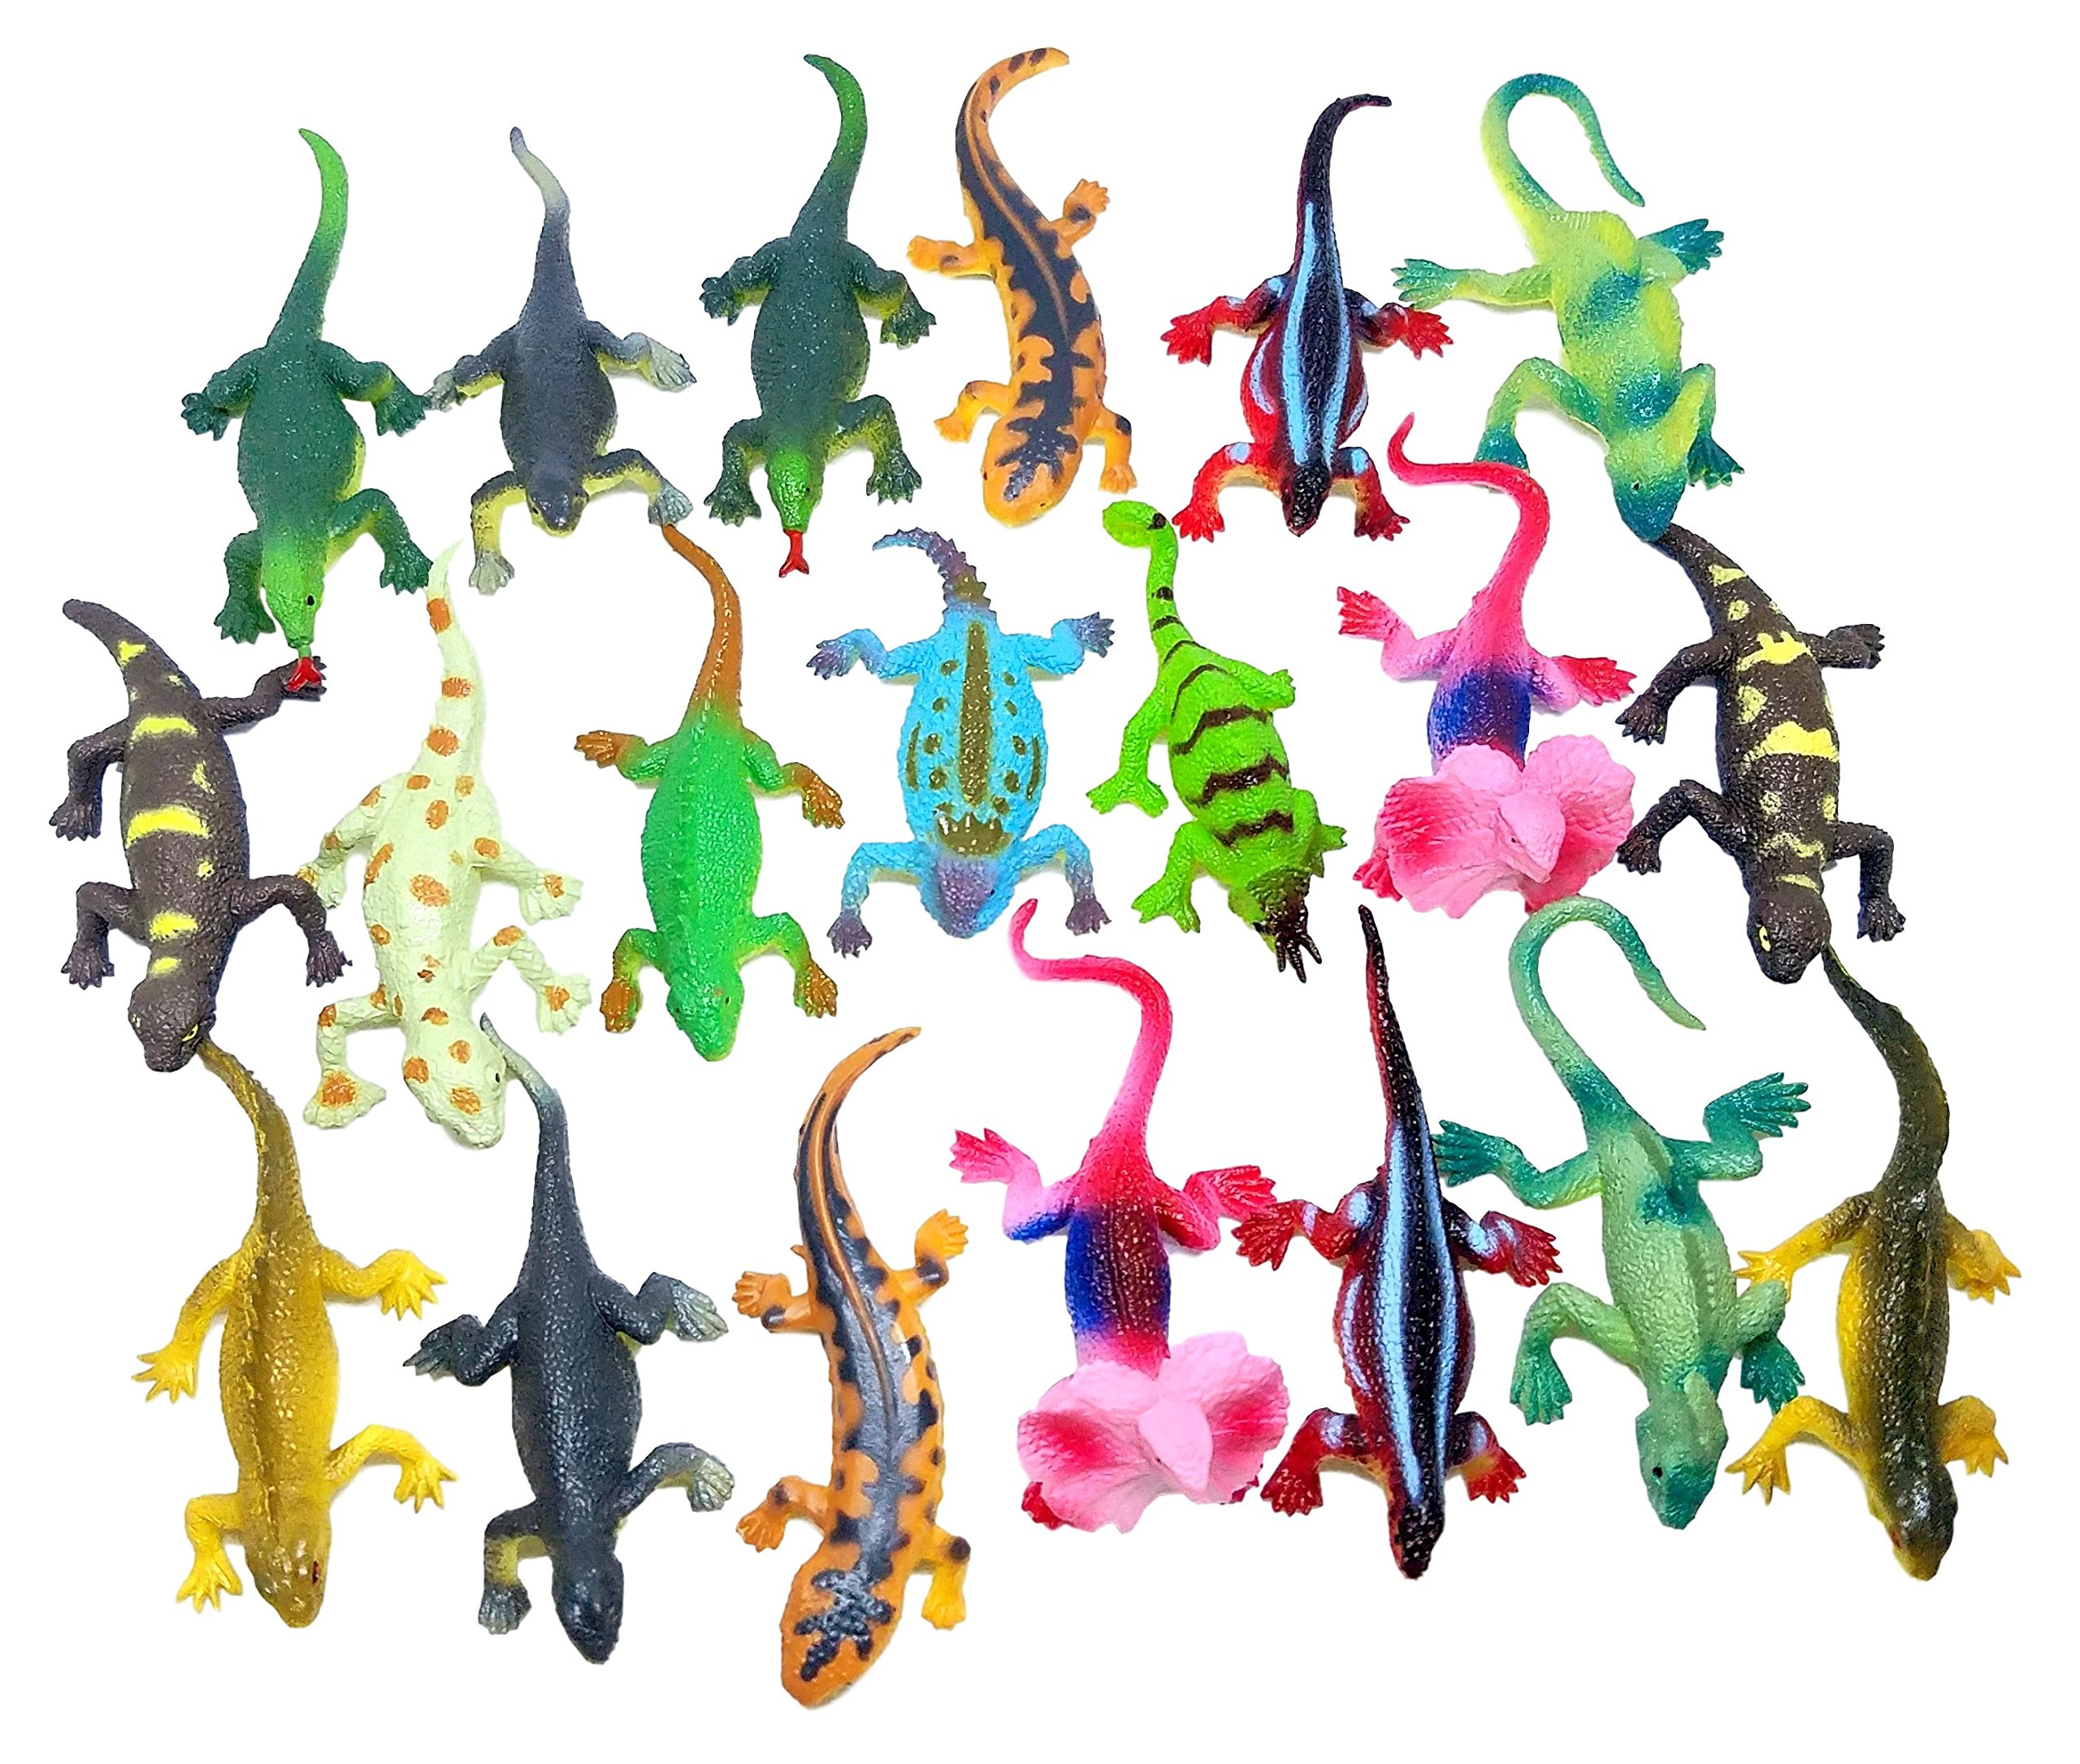 Izzy Designs Mini Lizard Action Figure Play Set, 24 ct (2 sets of 12)- Kids Small Party Favor, Piñata Filler, Educational Counting, & Sensory Toy, Assorted Colors